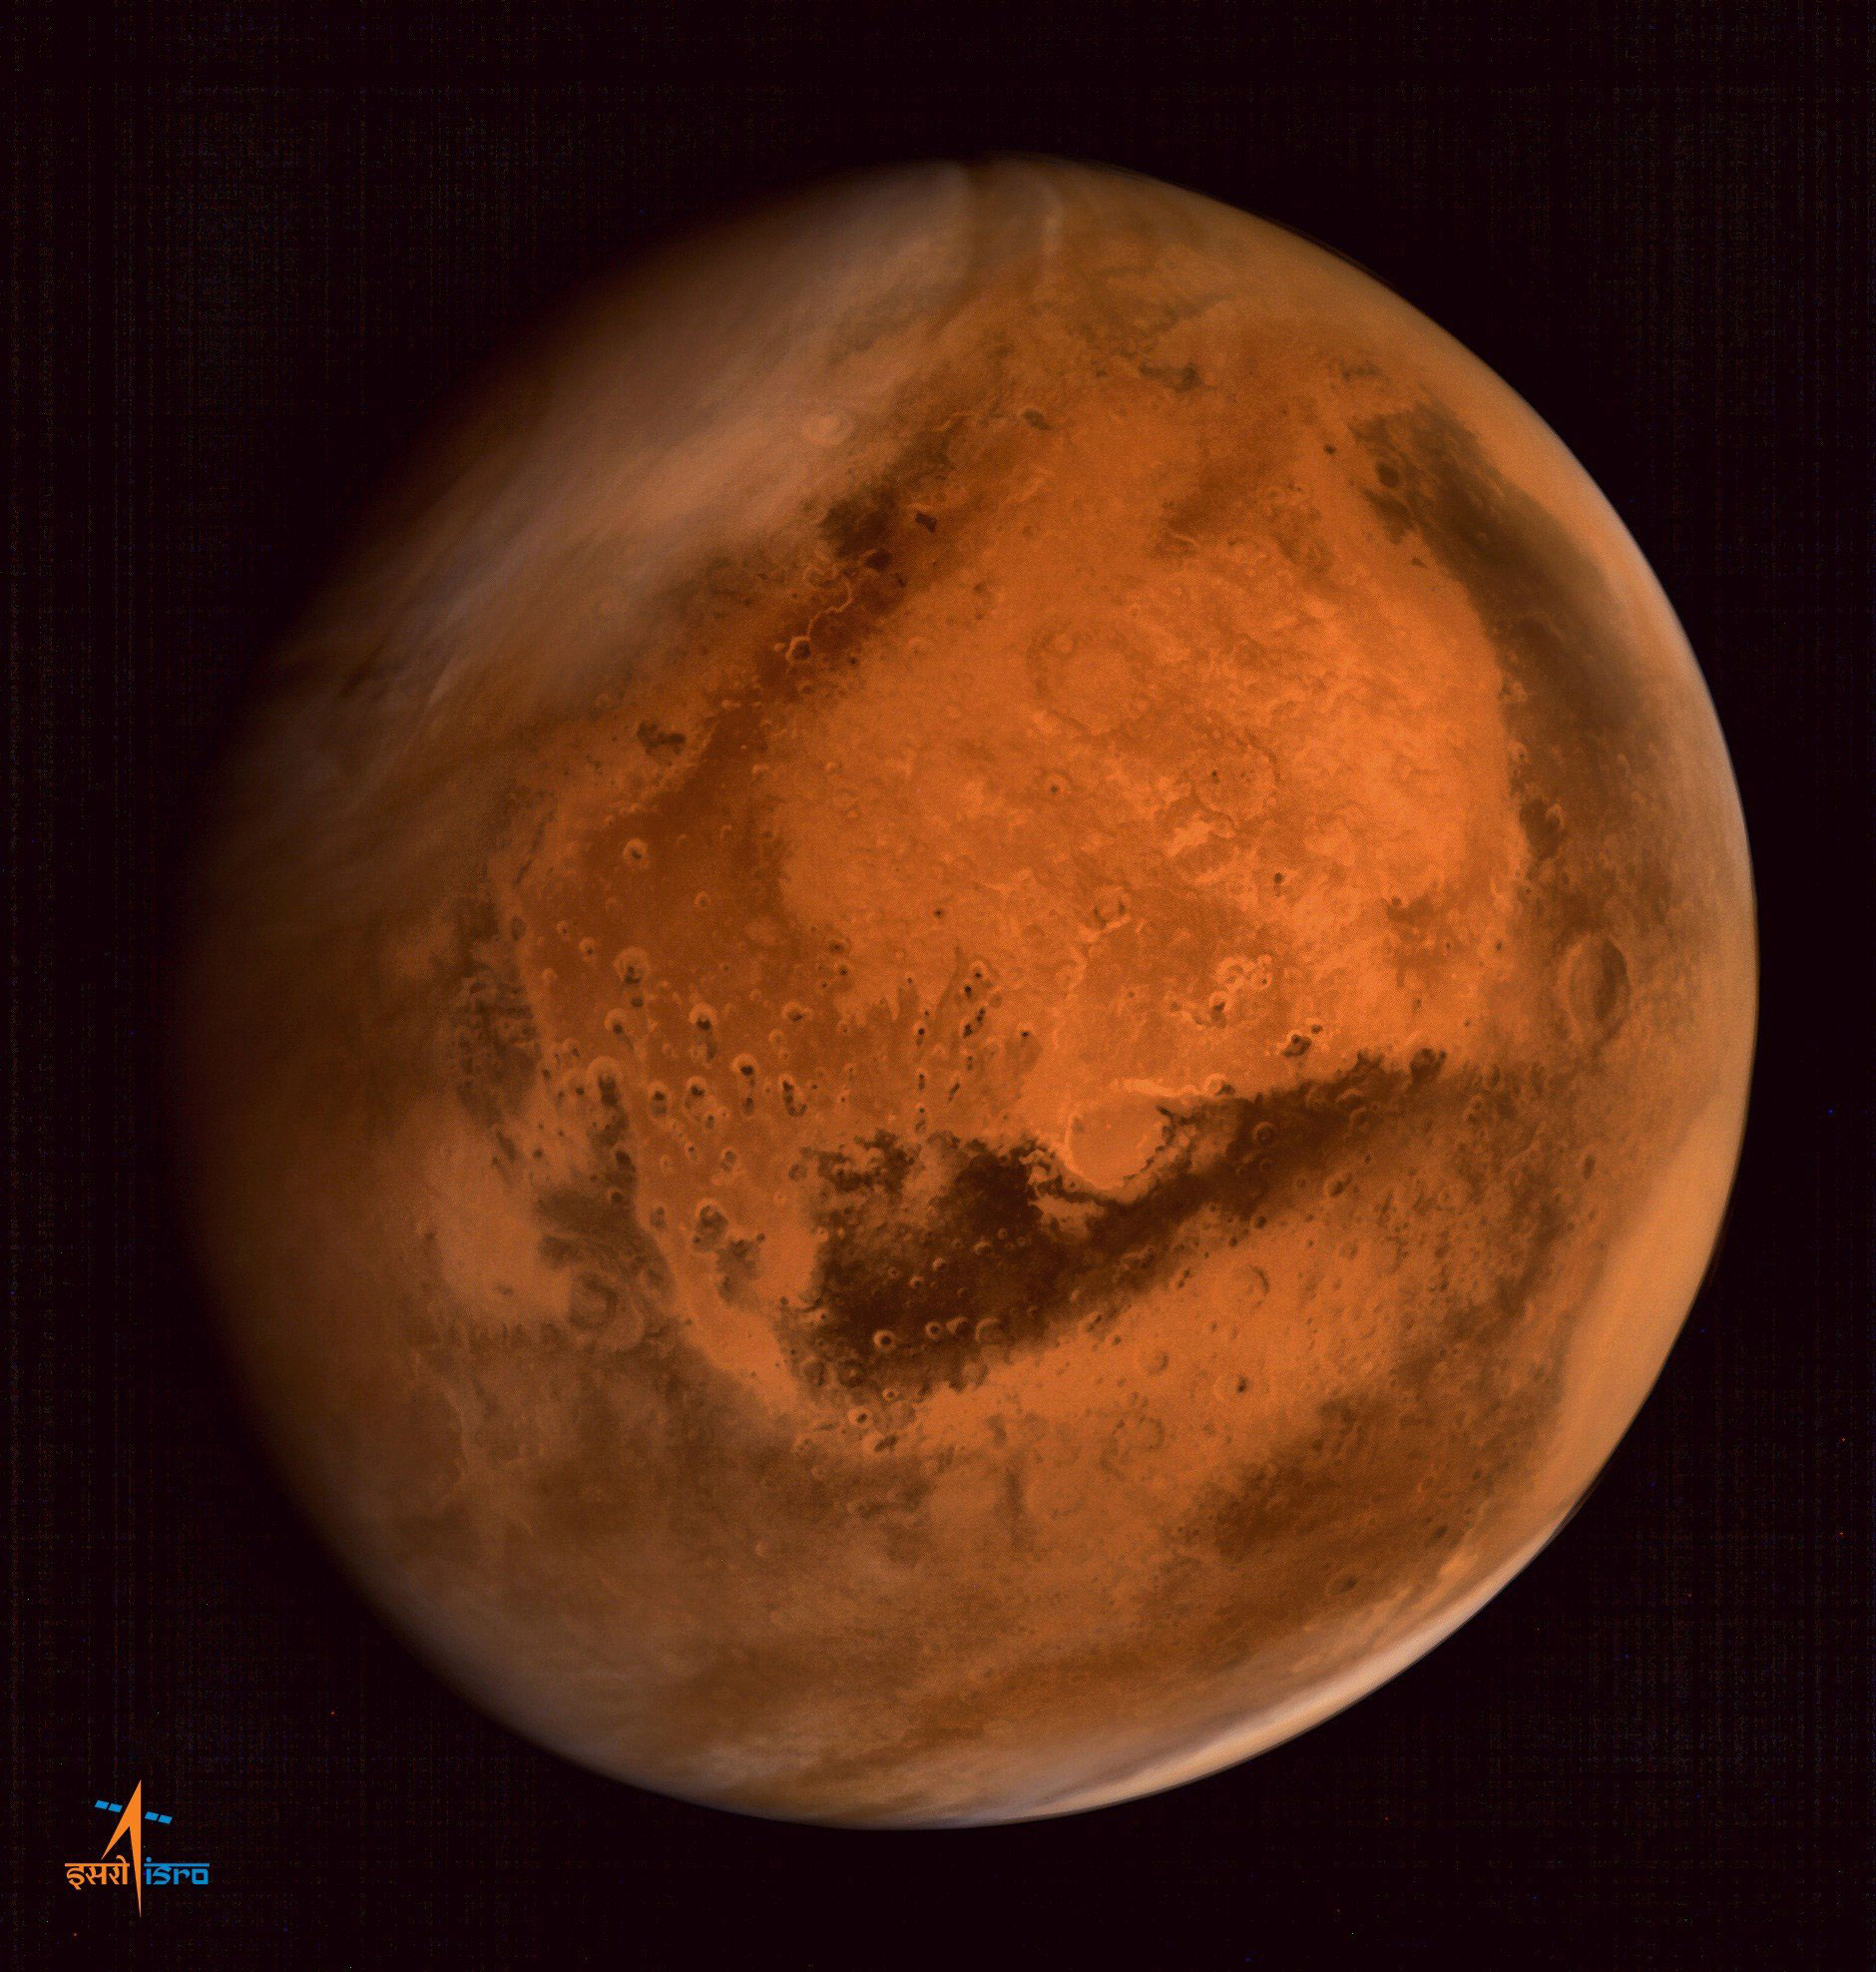 Mars photographed by the ISRO Mars Orbiter Mission (MOM) spacecraft on Sept. 30, 2014.